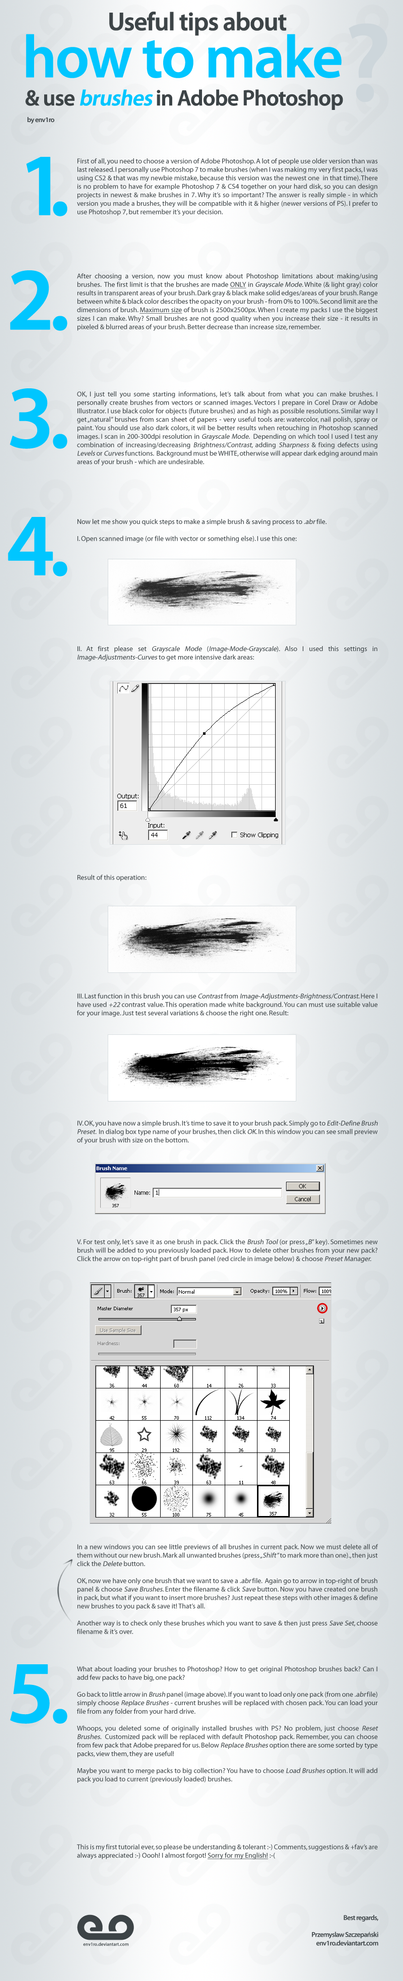 How To Use, Make Brushes in PS by env1ro